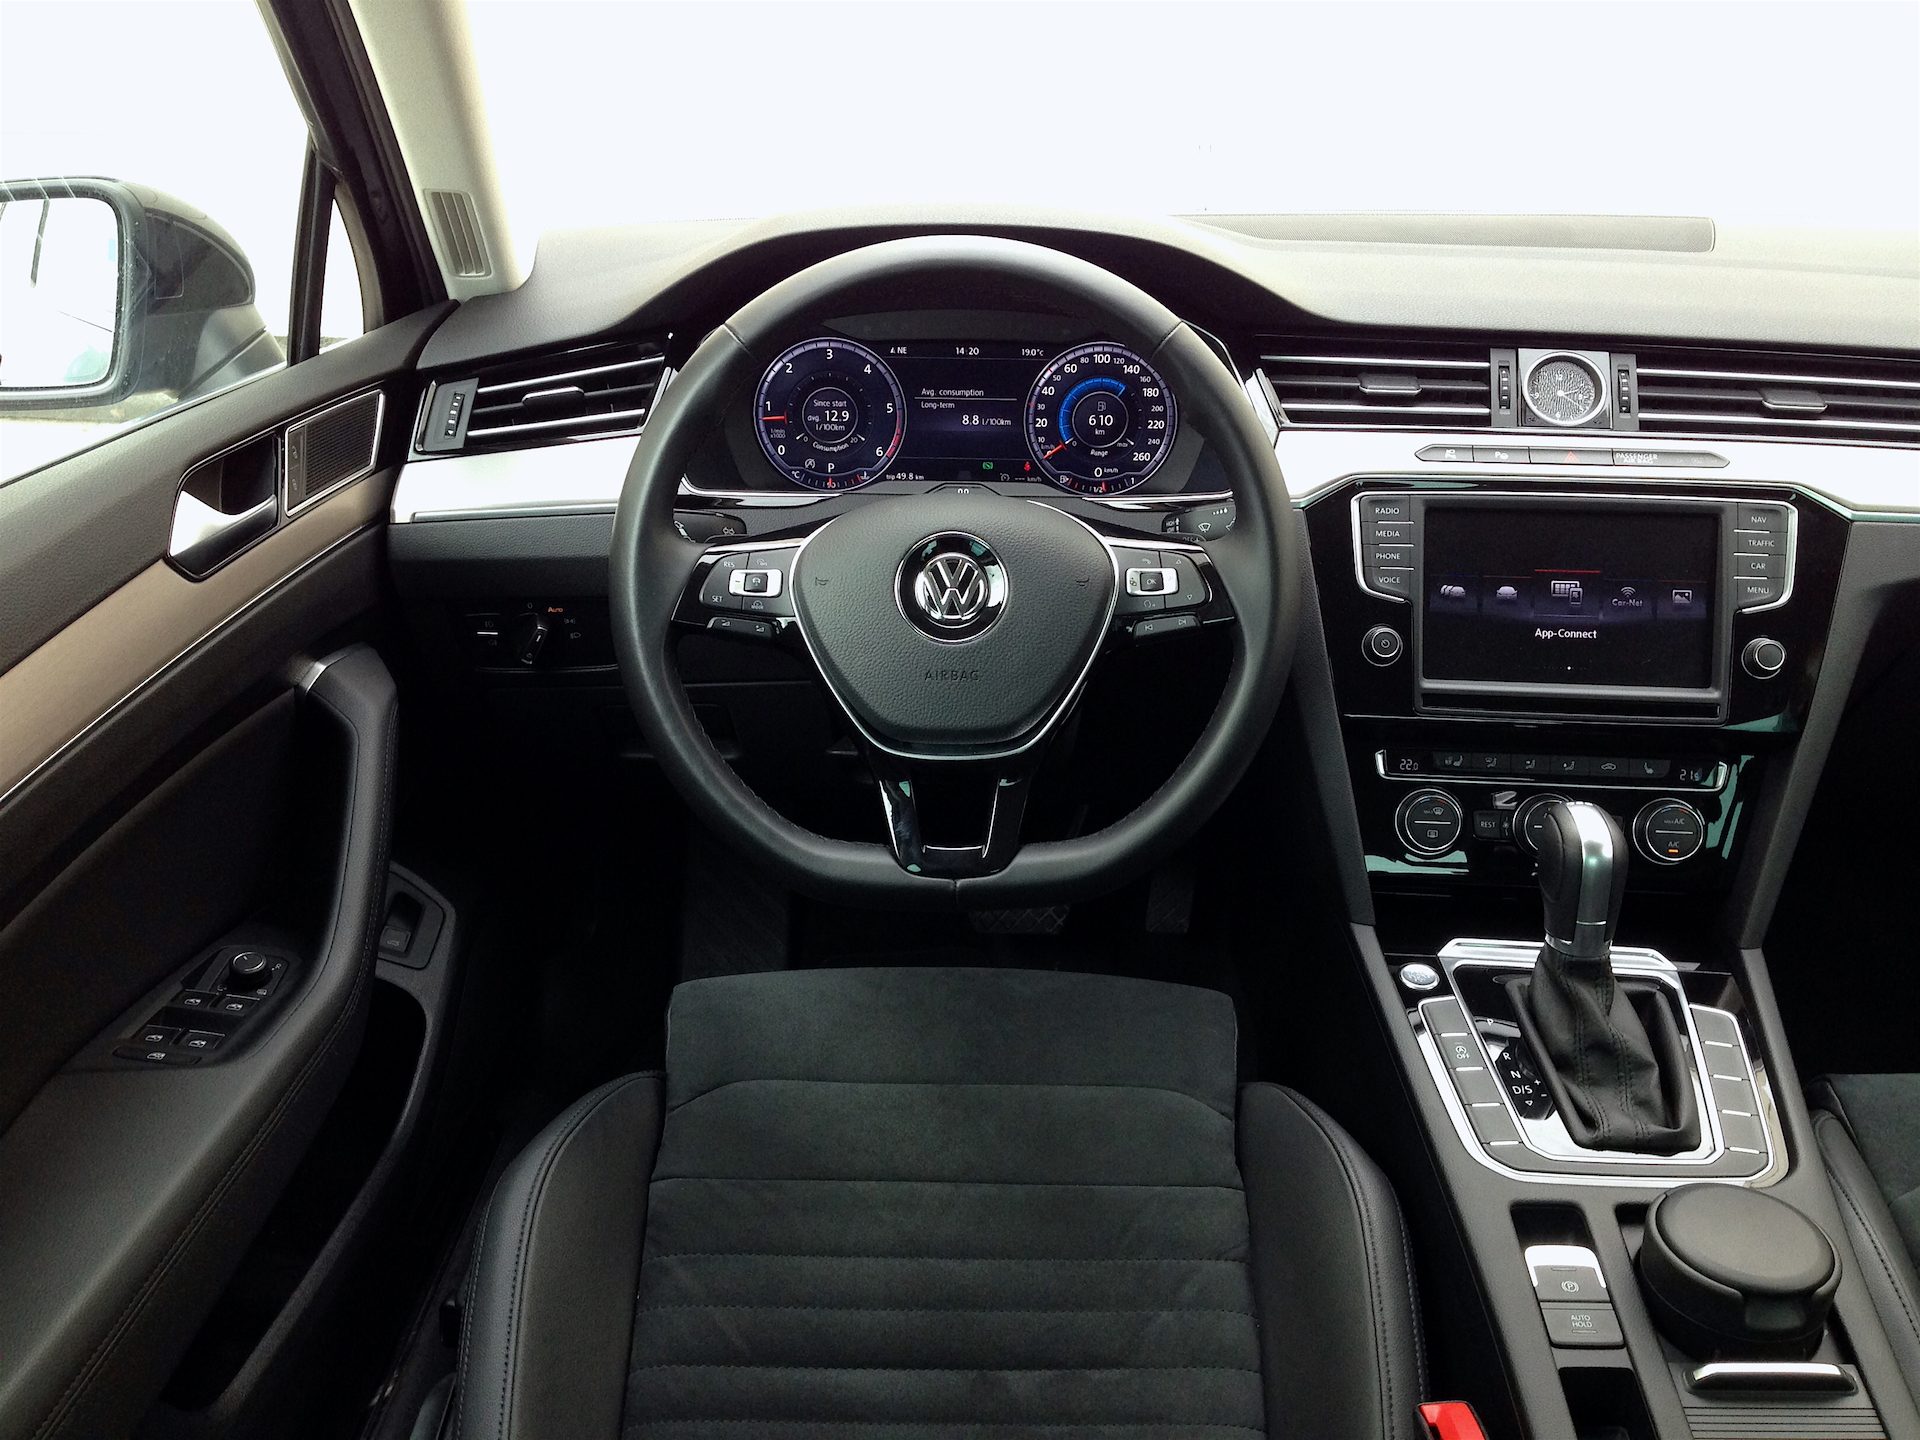 100 volkswagen tdi 2017 instant cult classic u002717 vw golf sportwagen 4motion manual. Black Bedroom Furniture Sets. Home Design Ideas